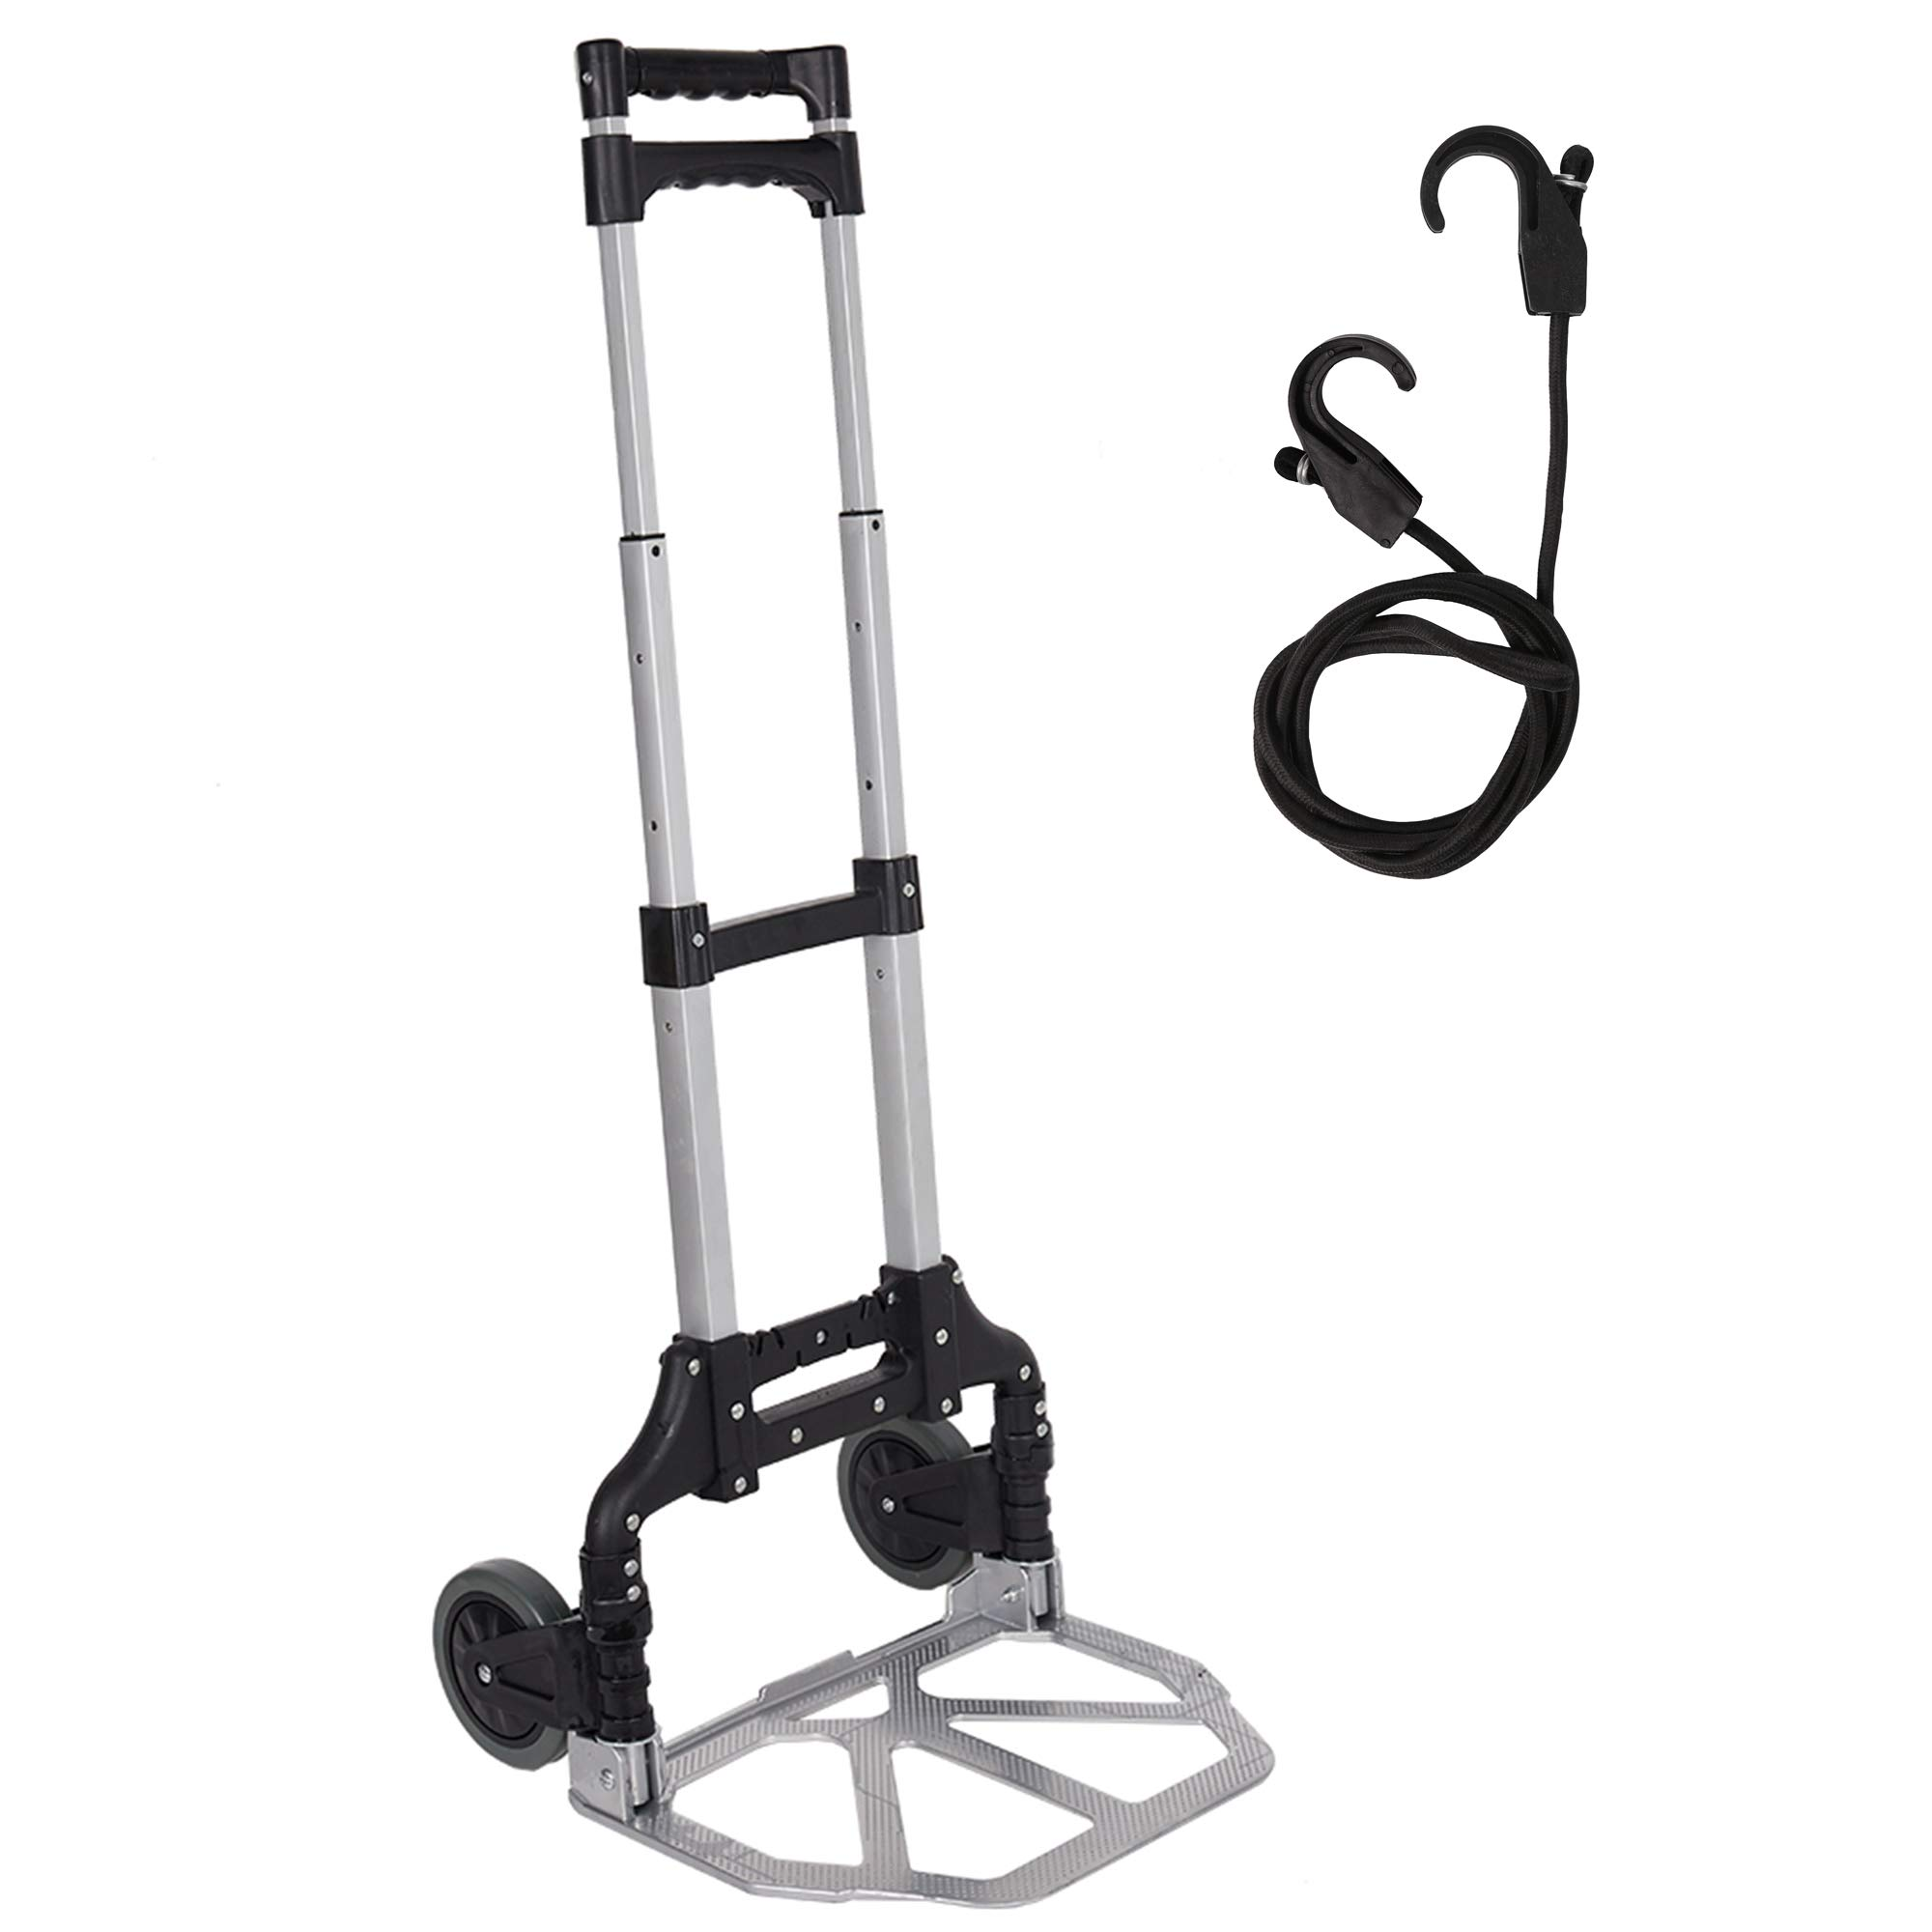 Lucky Tree Foldable Hand Dolly Rolling Hand Truck Cart with 2 Wheels Aluminum Luggage Trolley 170 Lbs Capacity